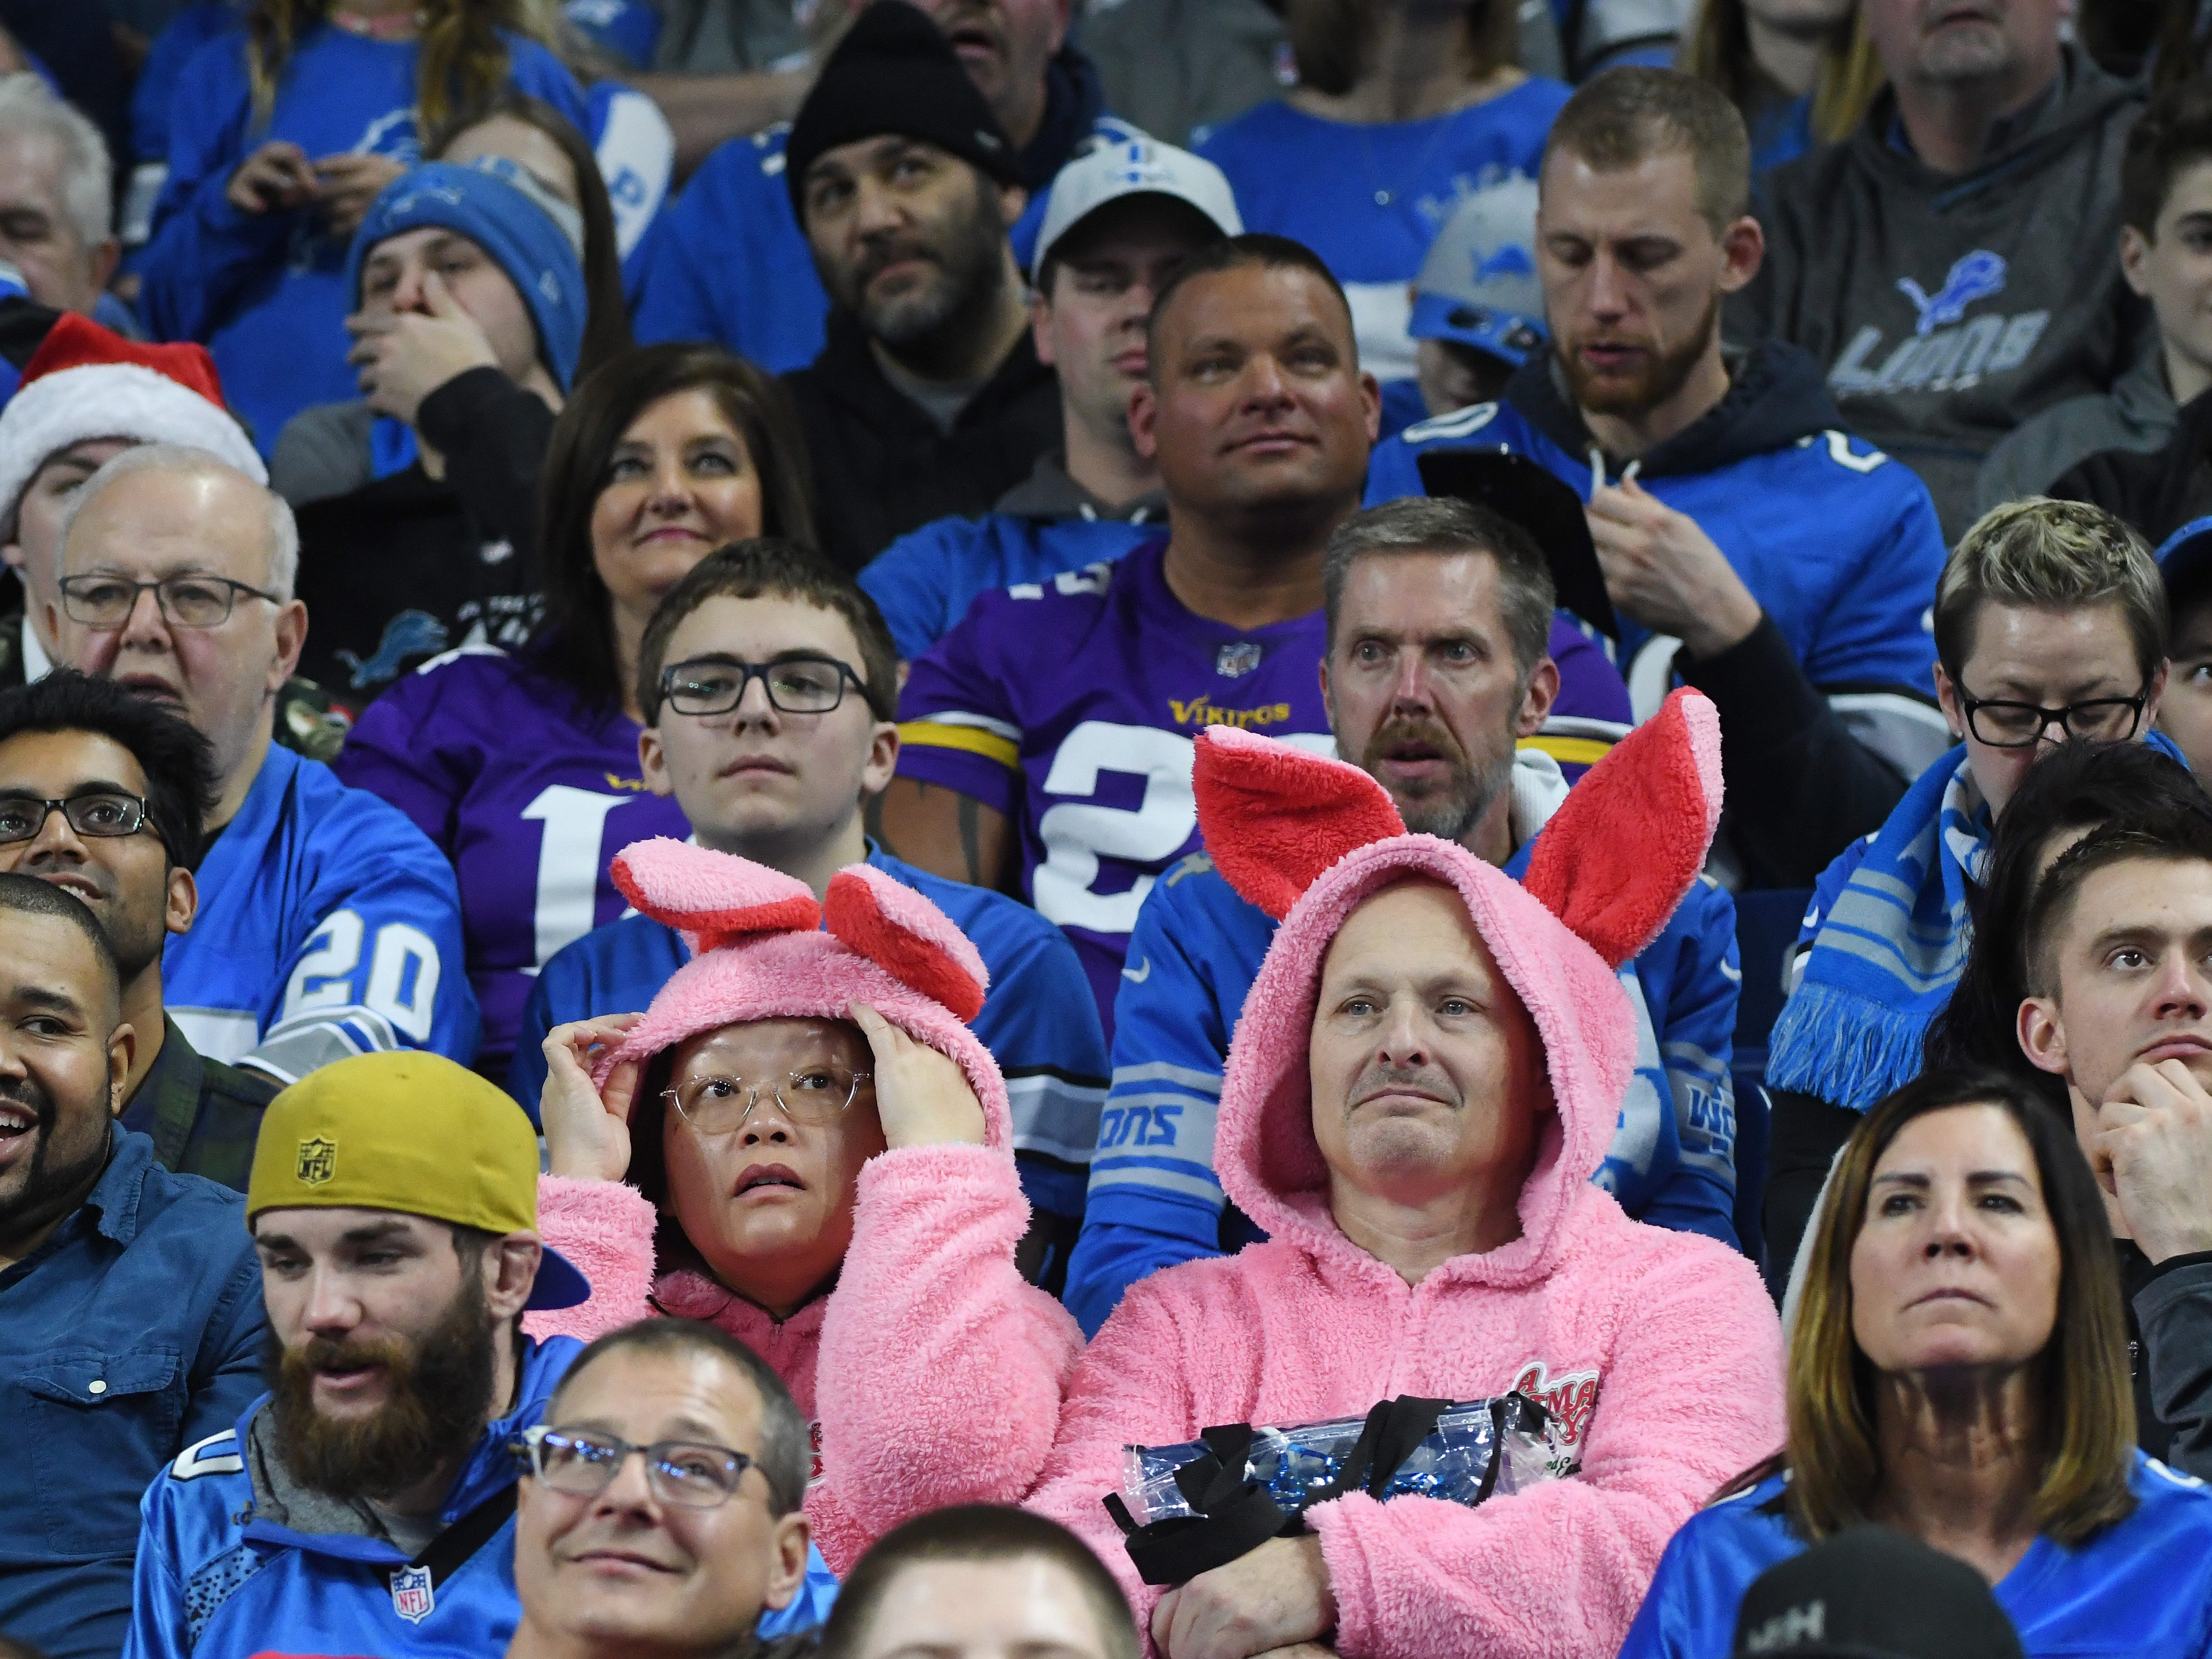 Fans in Ford Field, wearing bunny suits similar to the one in the movie Christmas Story, watch Detroit drop another game, this time to the Vikings, 27-9.